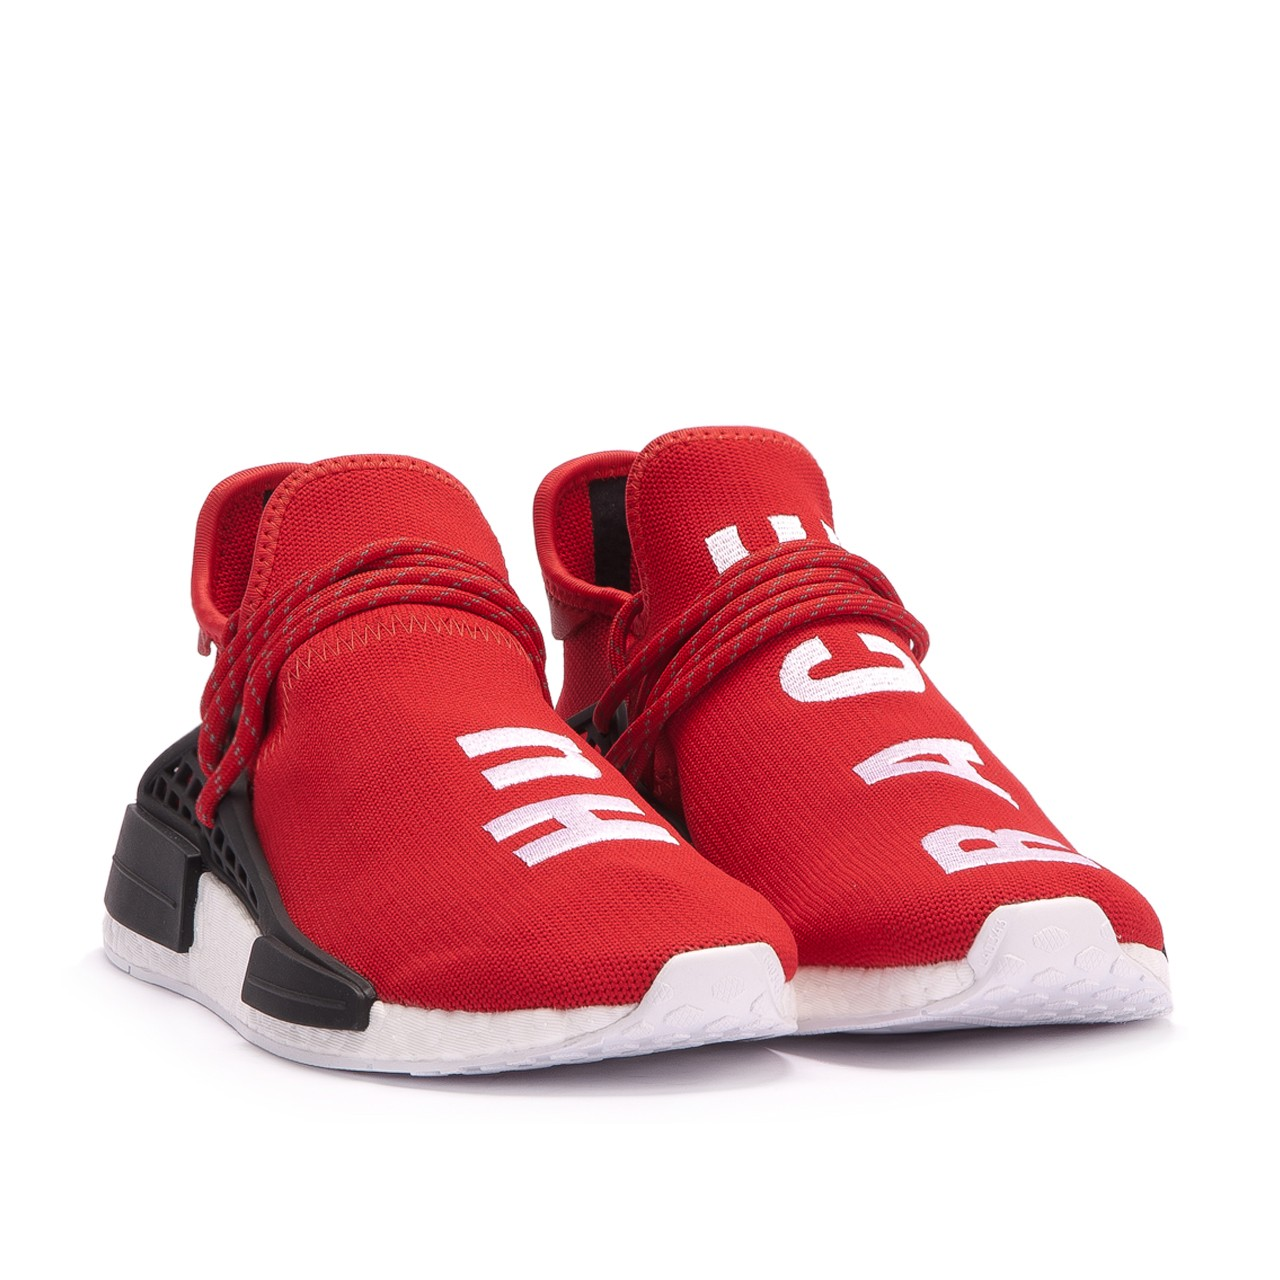 competitive price 8a710 3dd4c adidas nmd human race red